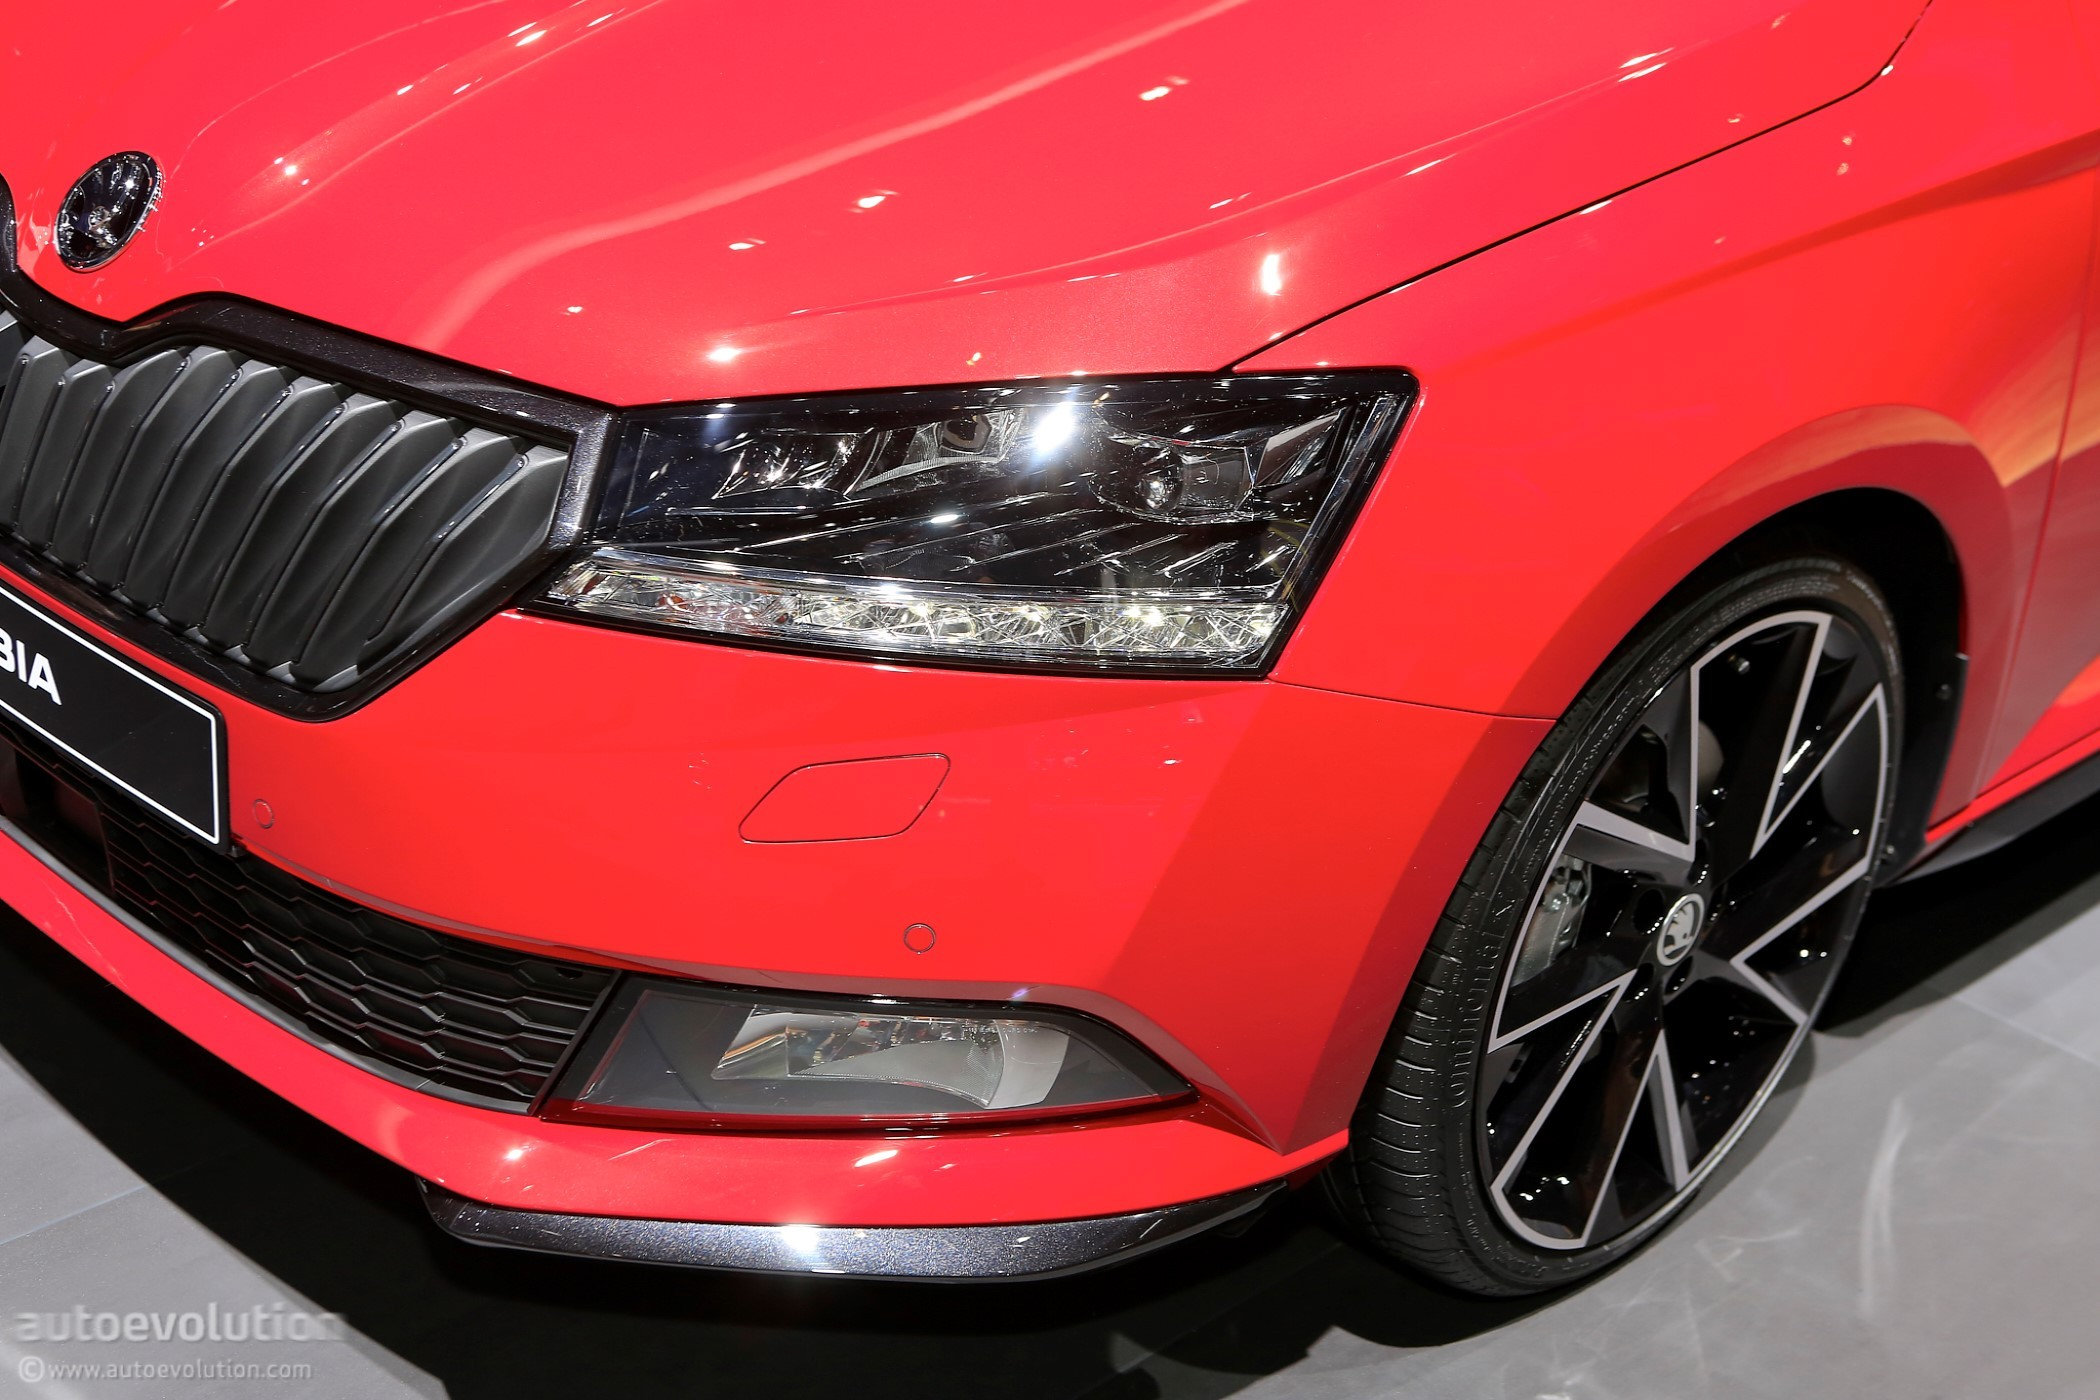 2018 skoda fabia rolls out midcycle refresh at geneva